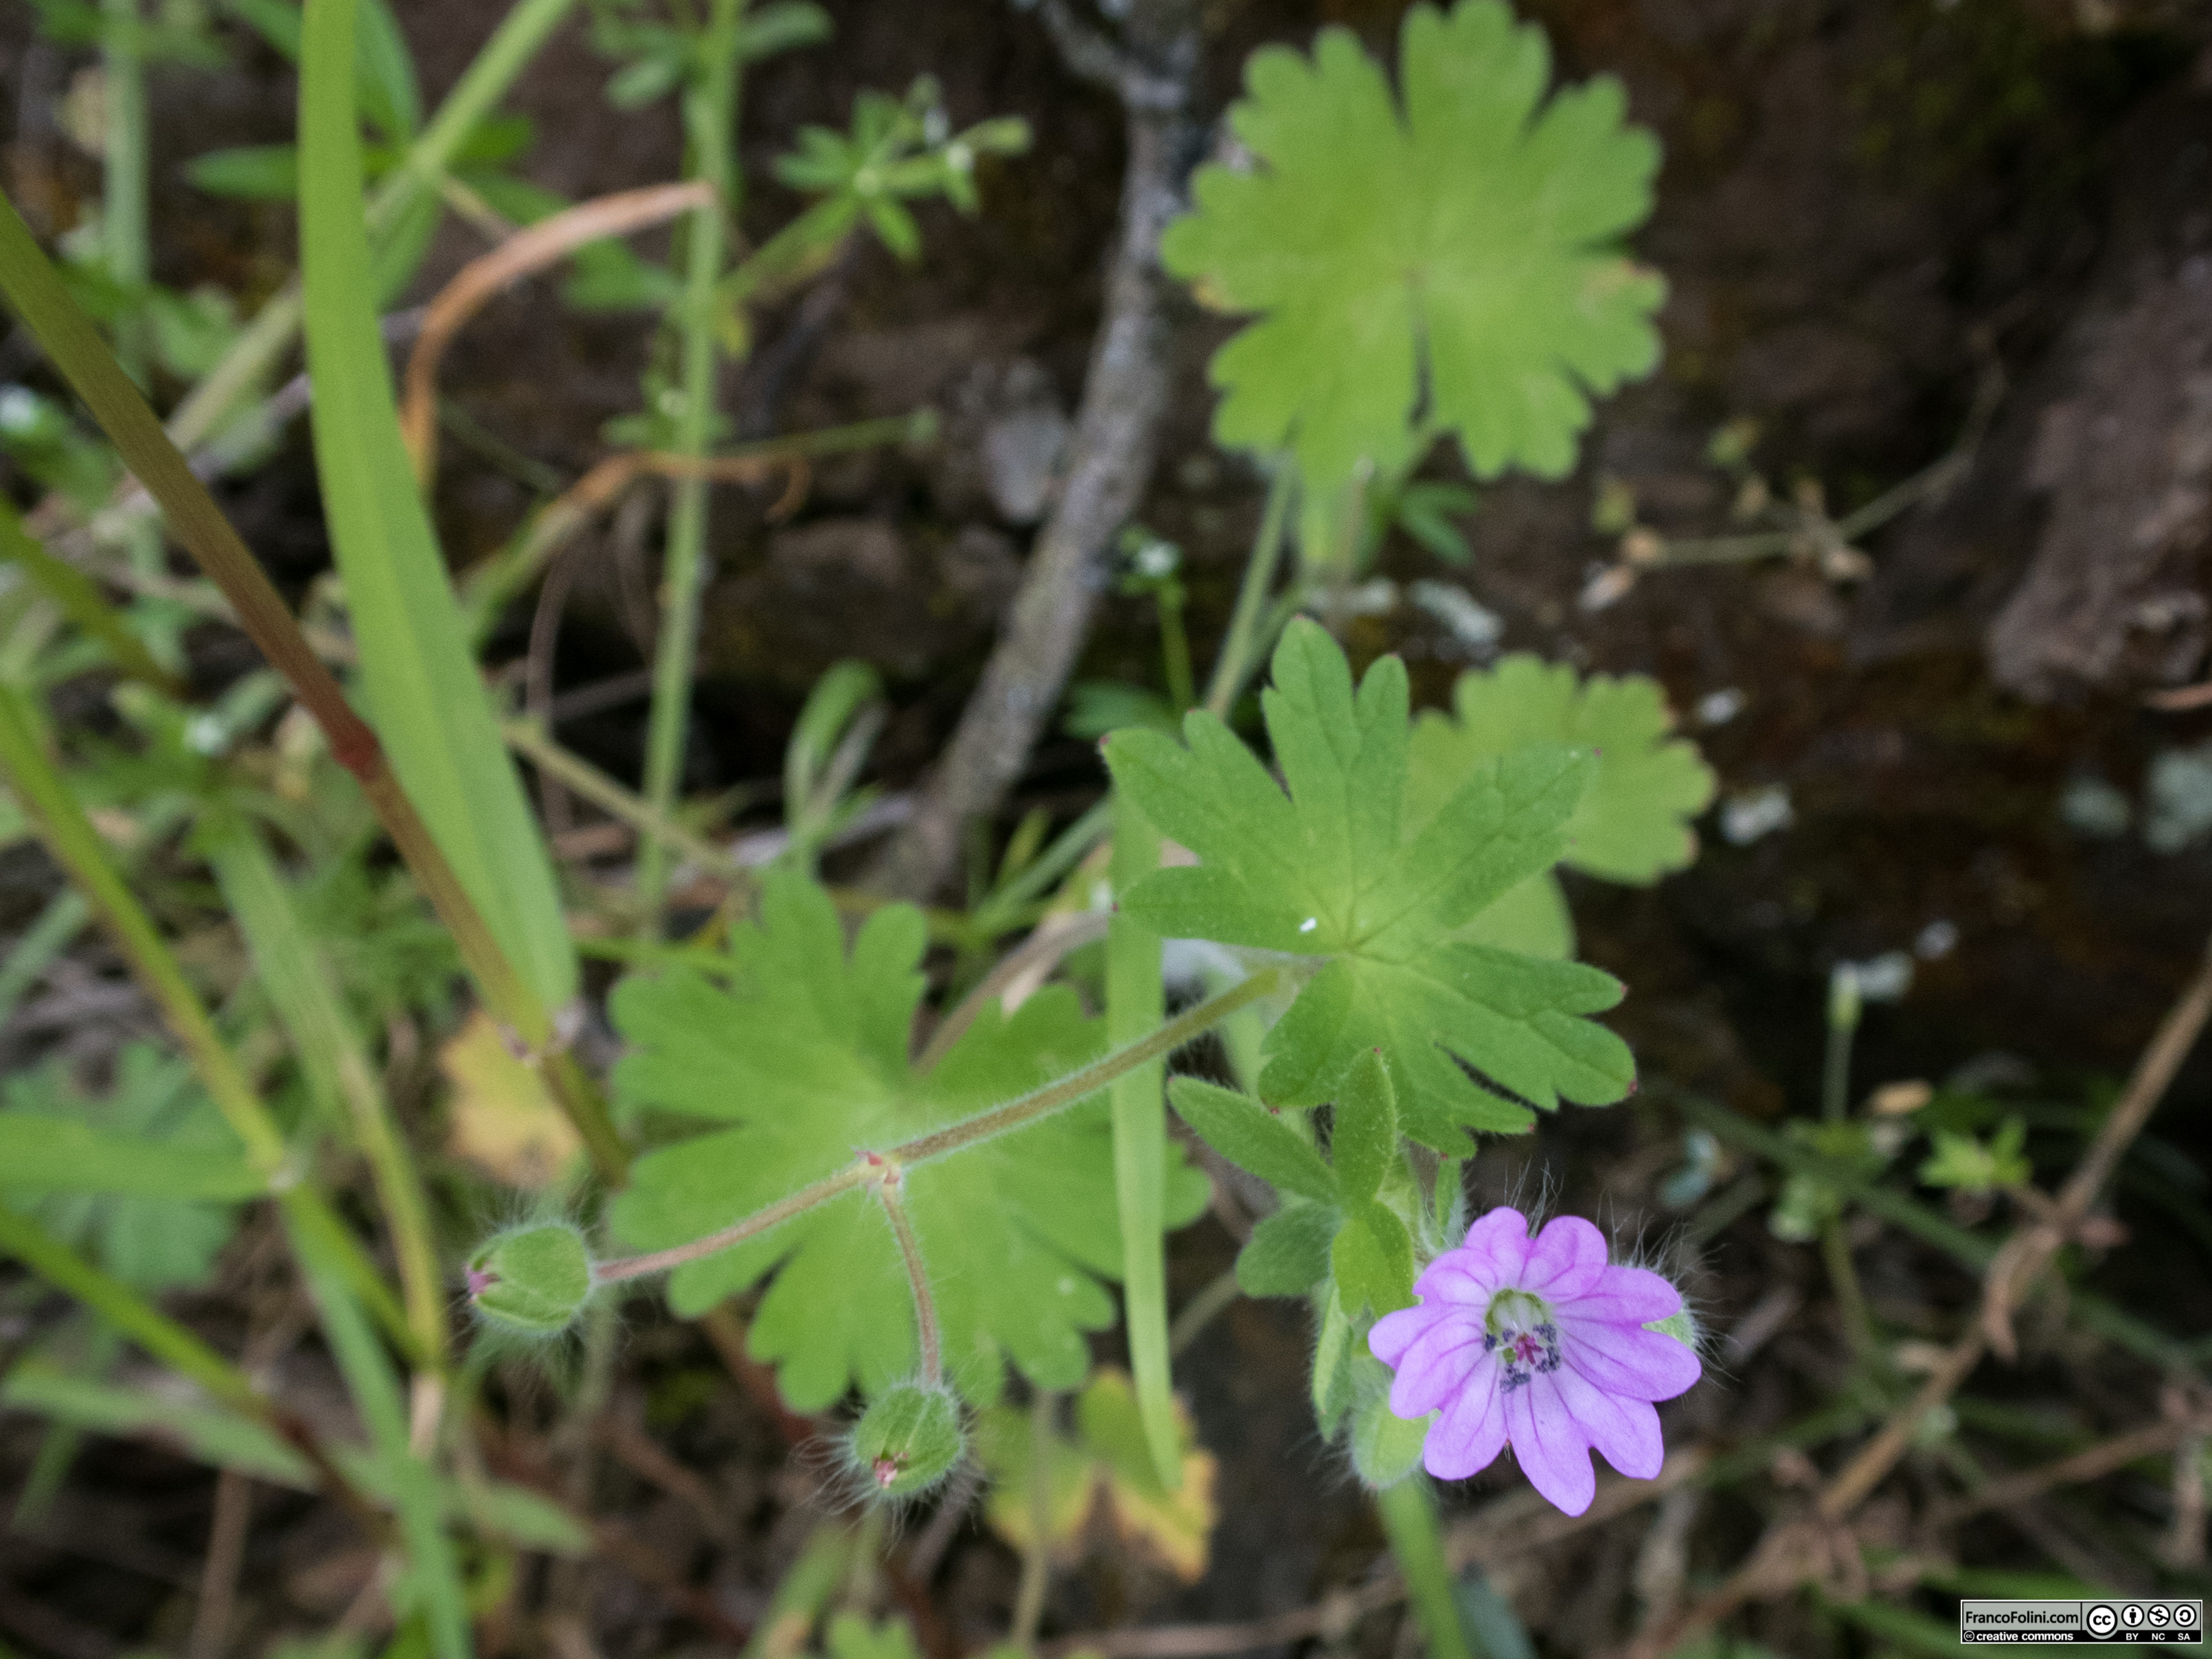 Dove's-foot crane's-bill (Geranium molle) Marin Headlands, CA